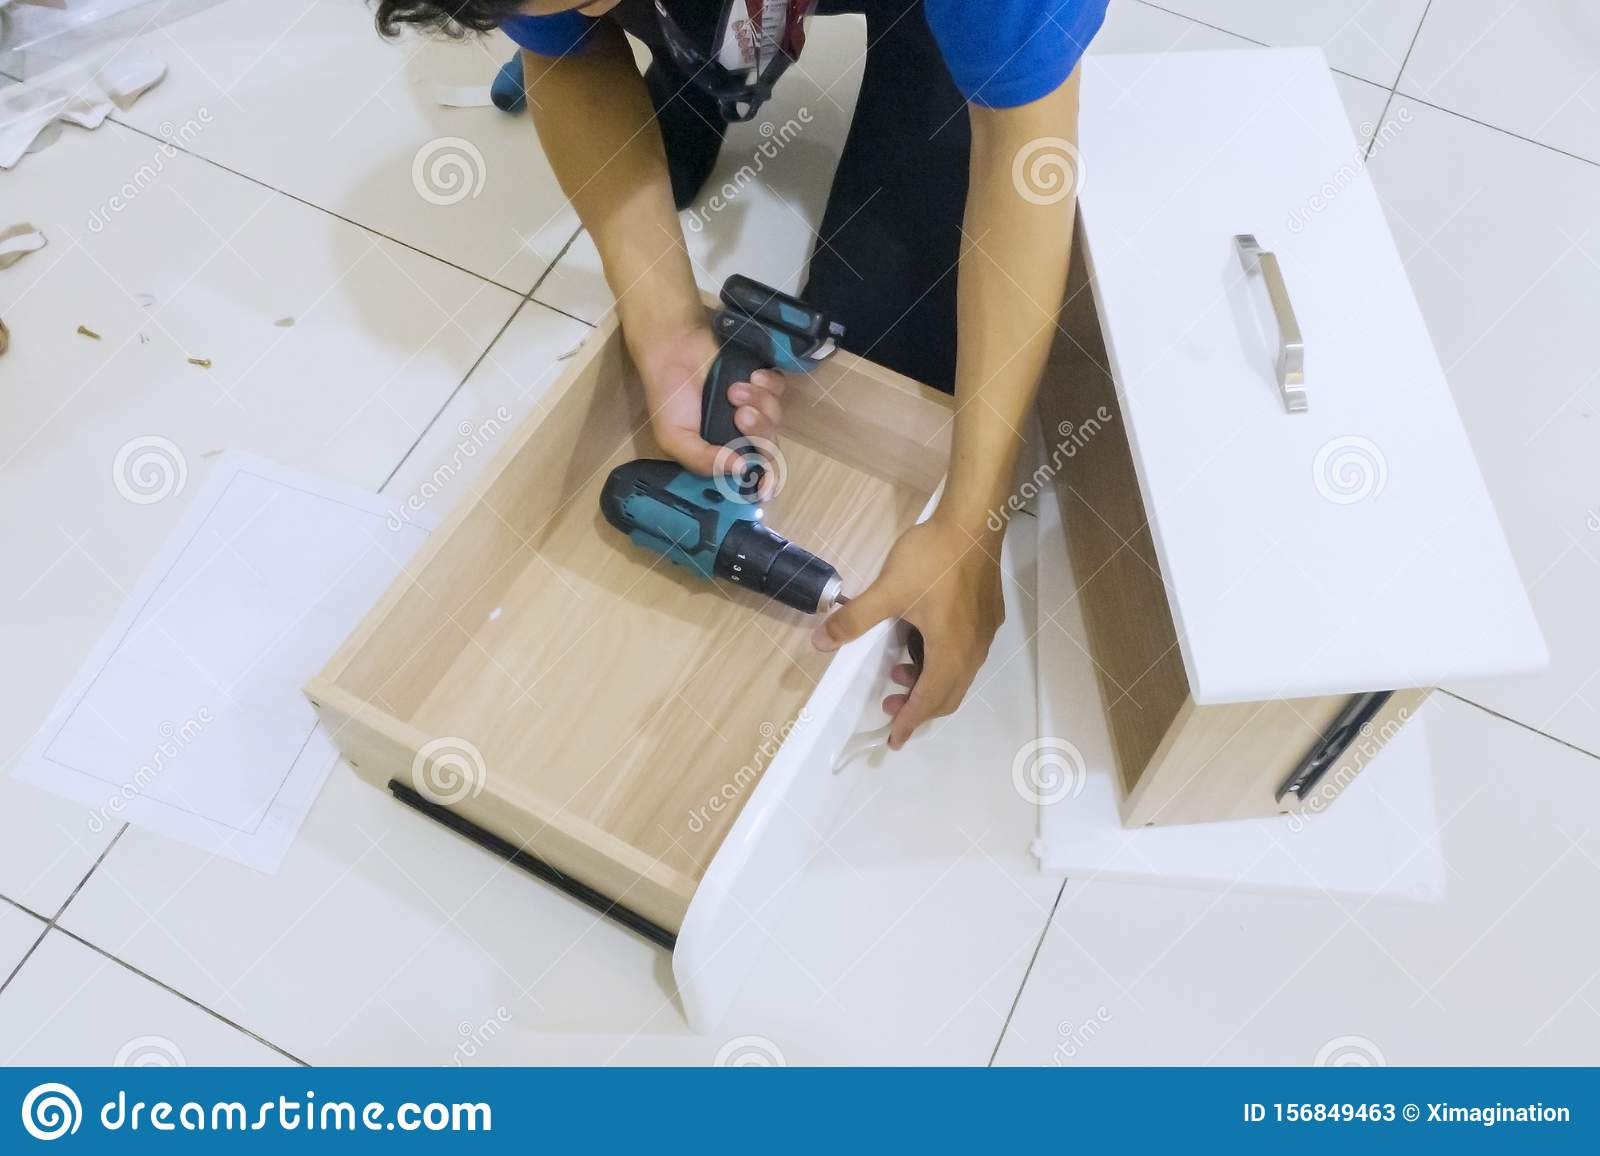 Carpenter hands installing a drawer with a drill